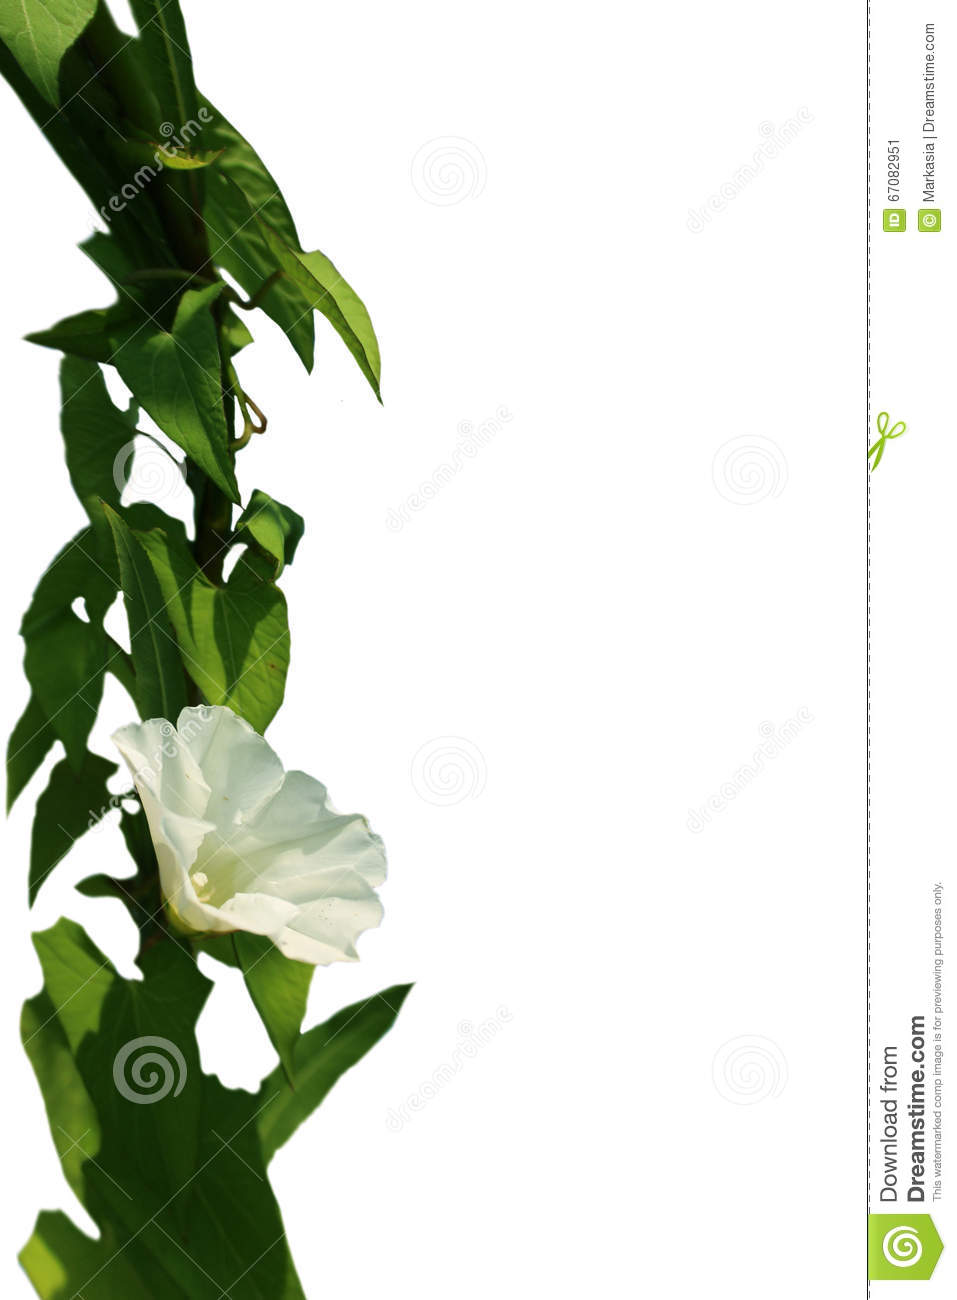 Climbing Plant With White Flower Stock Image Image Of Flora